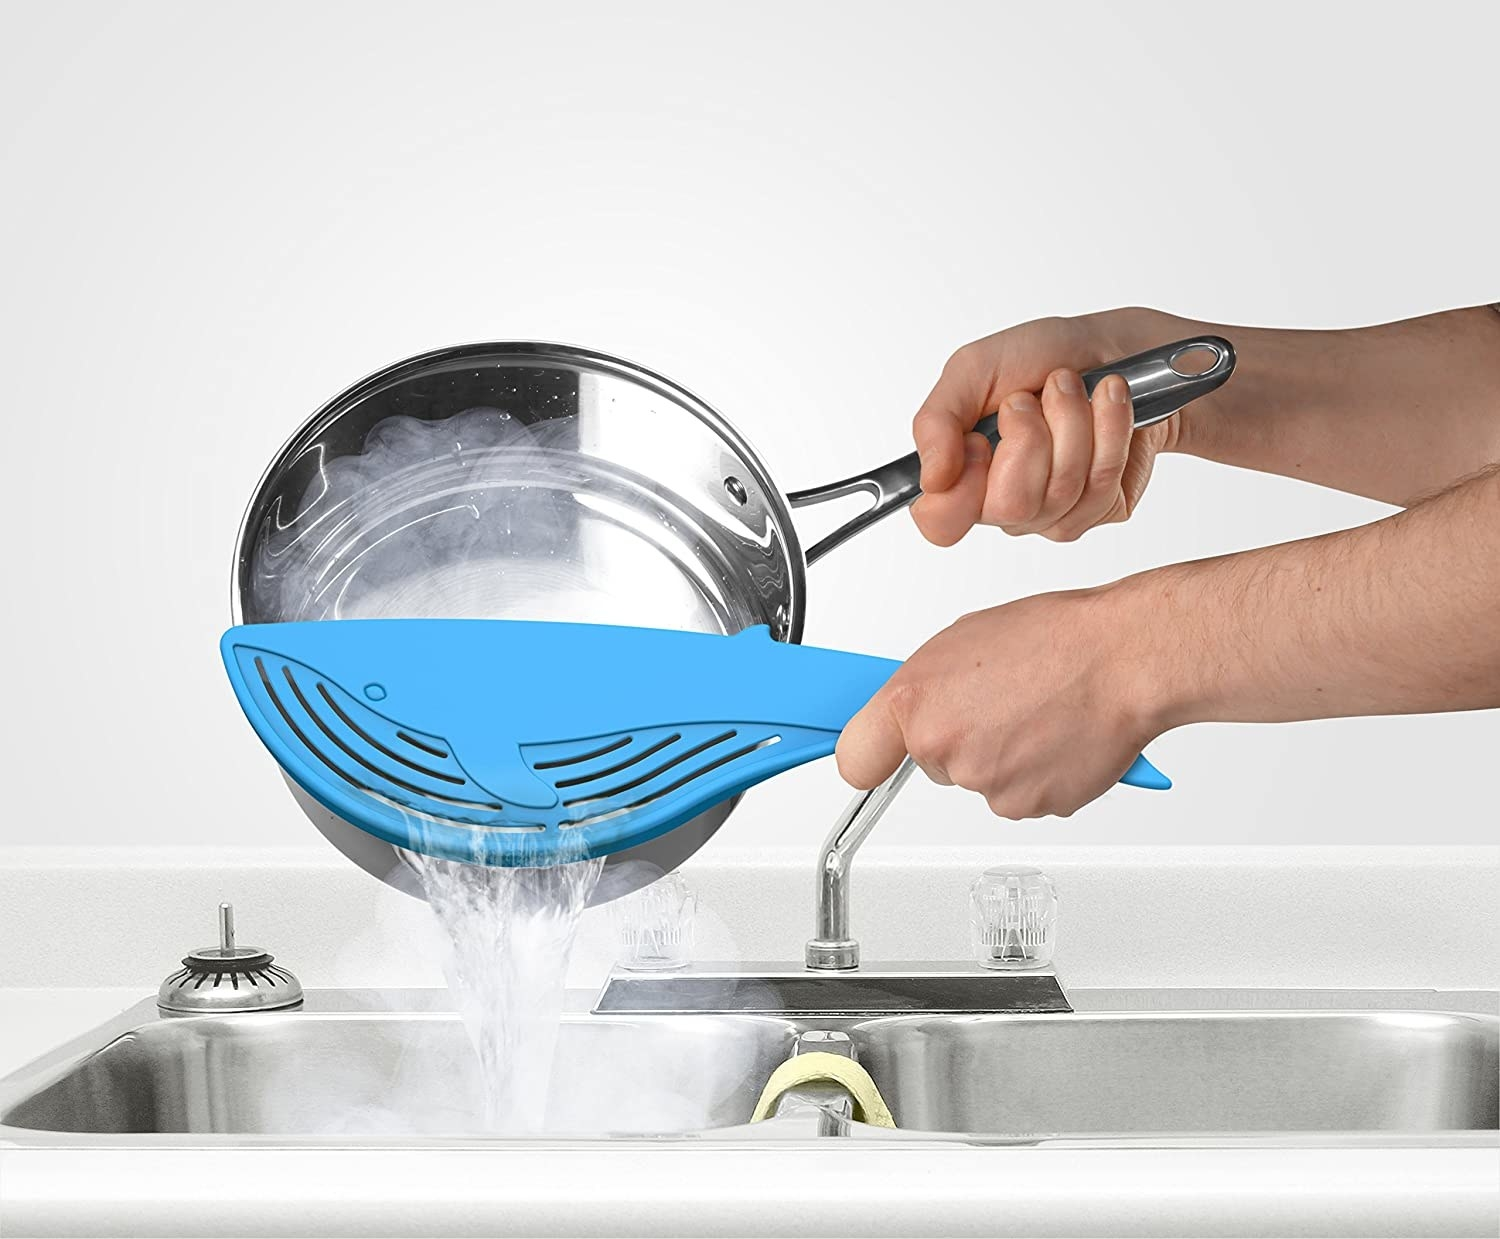 A blue whale-shaped strainer held against a pasta pot to drain water